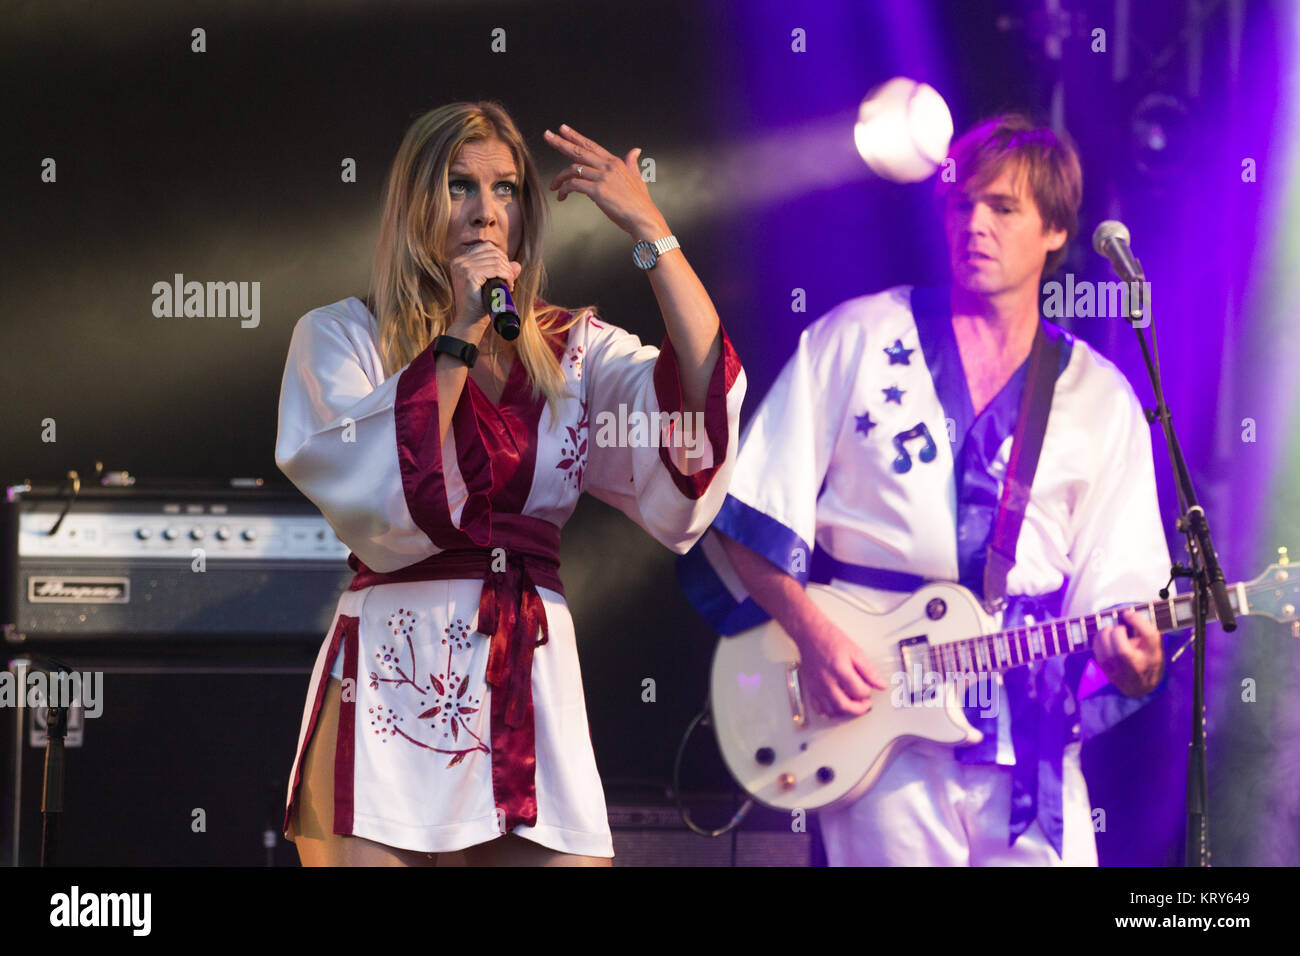 The Australian Abba Parady Group Björn Again Performs A Live Concert